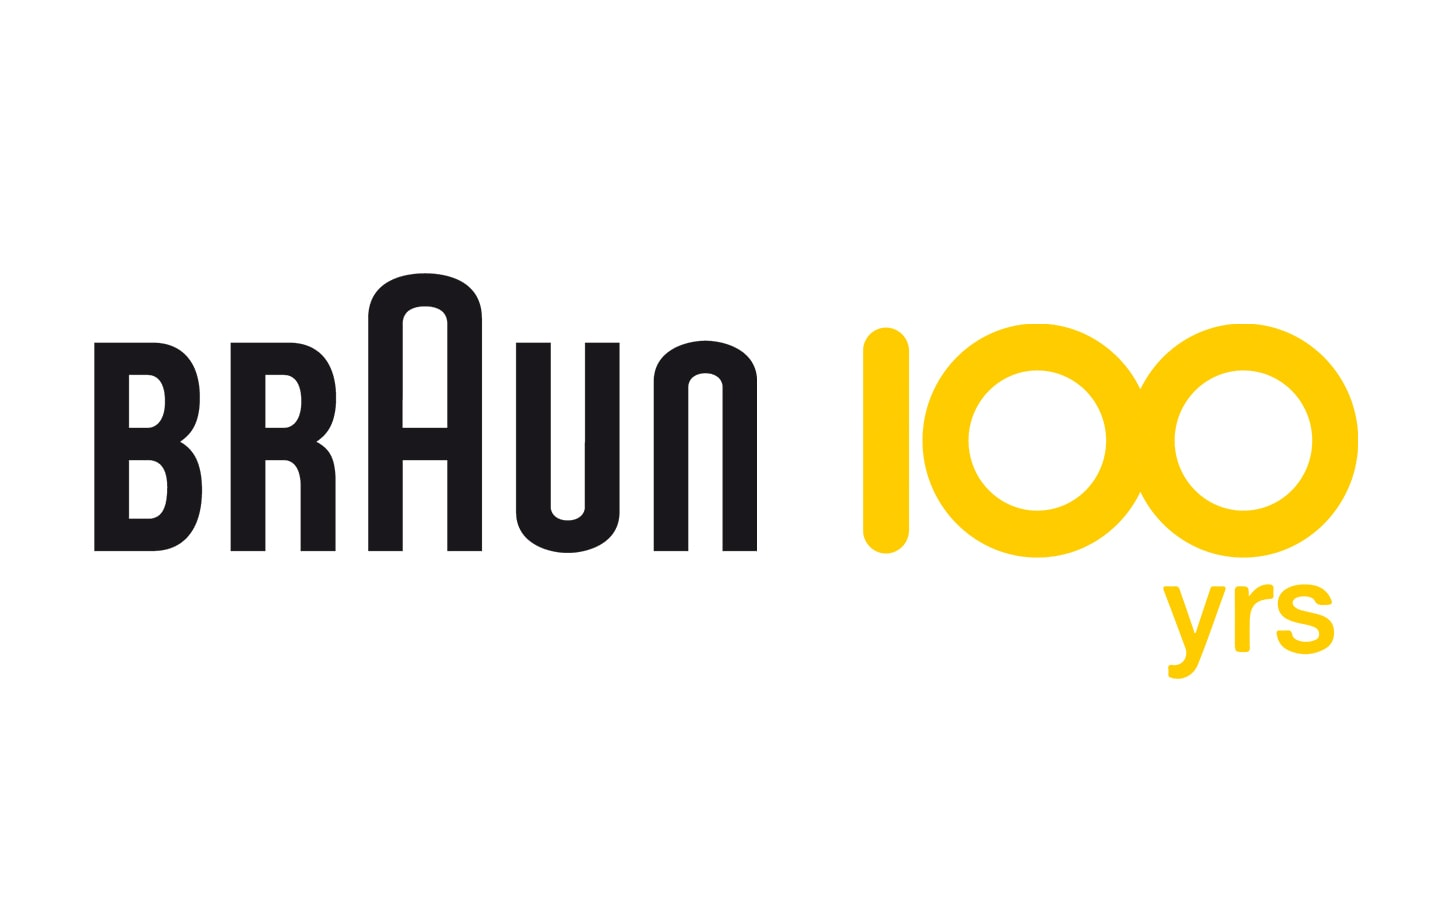 Braun 100 years – Good Design can make lives better